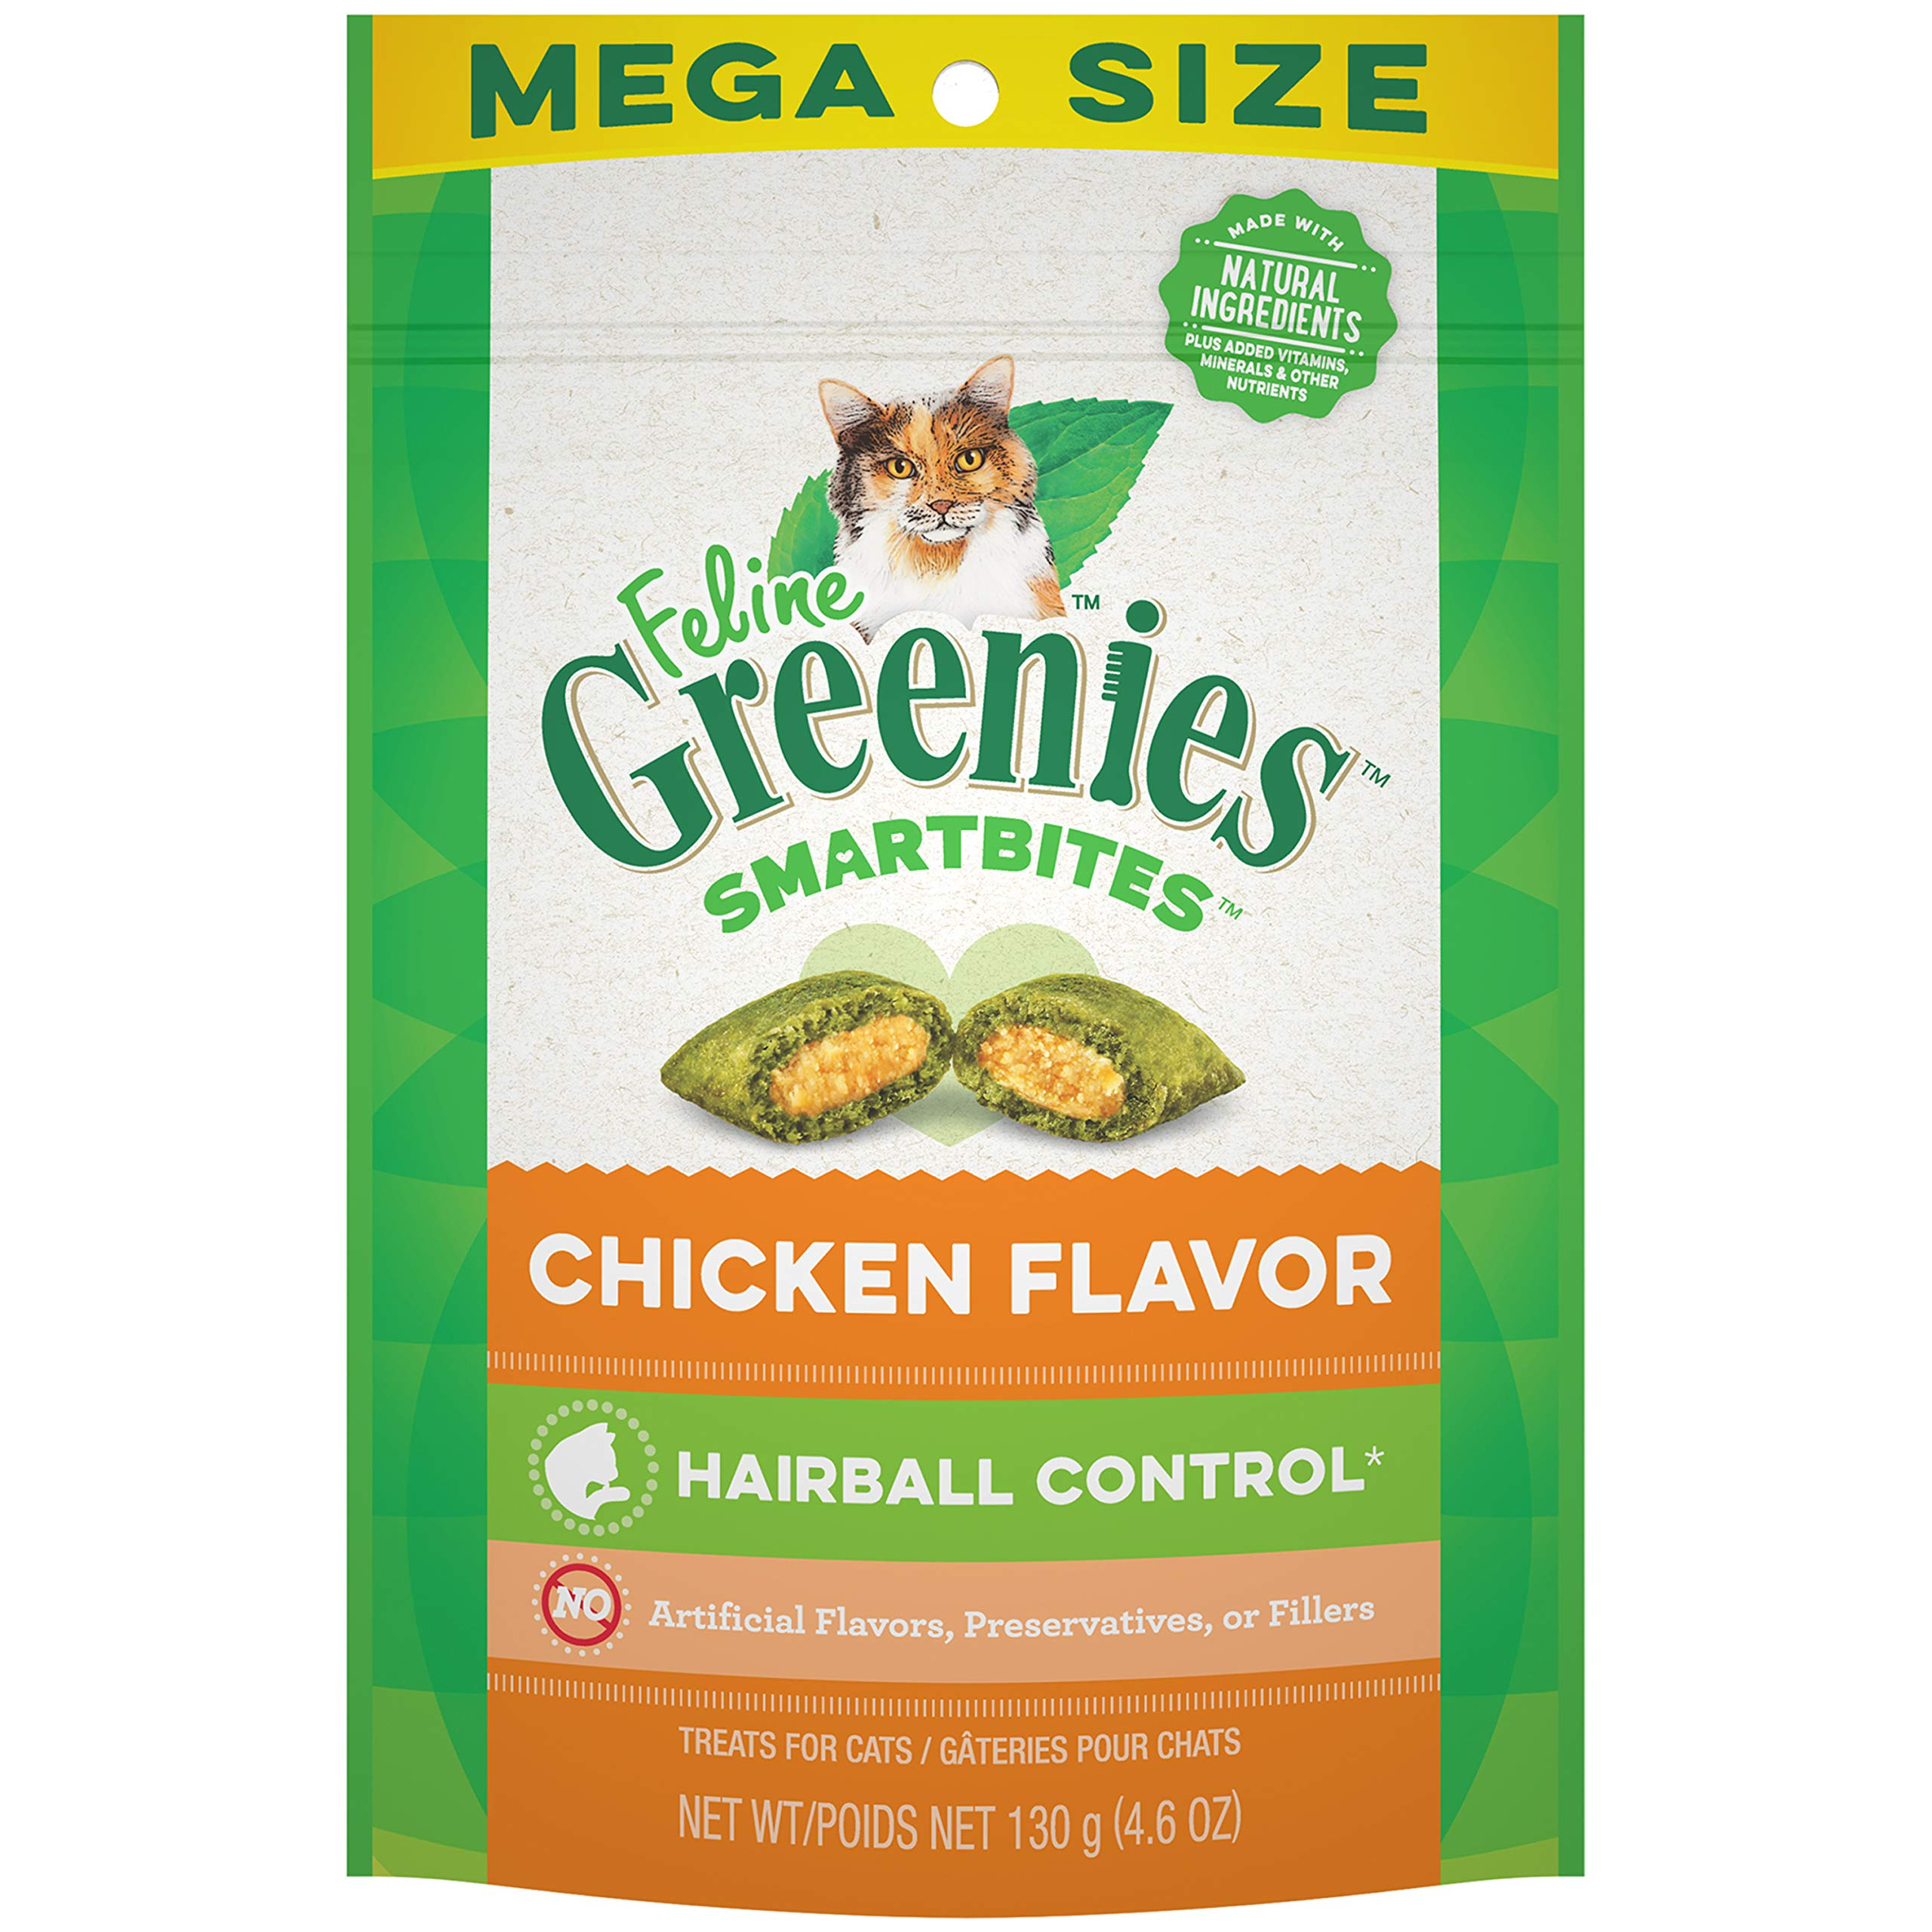 FELINE GREENIES SMARTBITES Hairball Control Natural Cat Treats Chicken Flavor, (10) 4.6 oz. Pouches by Greenies